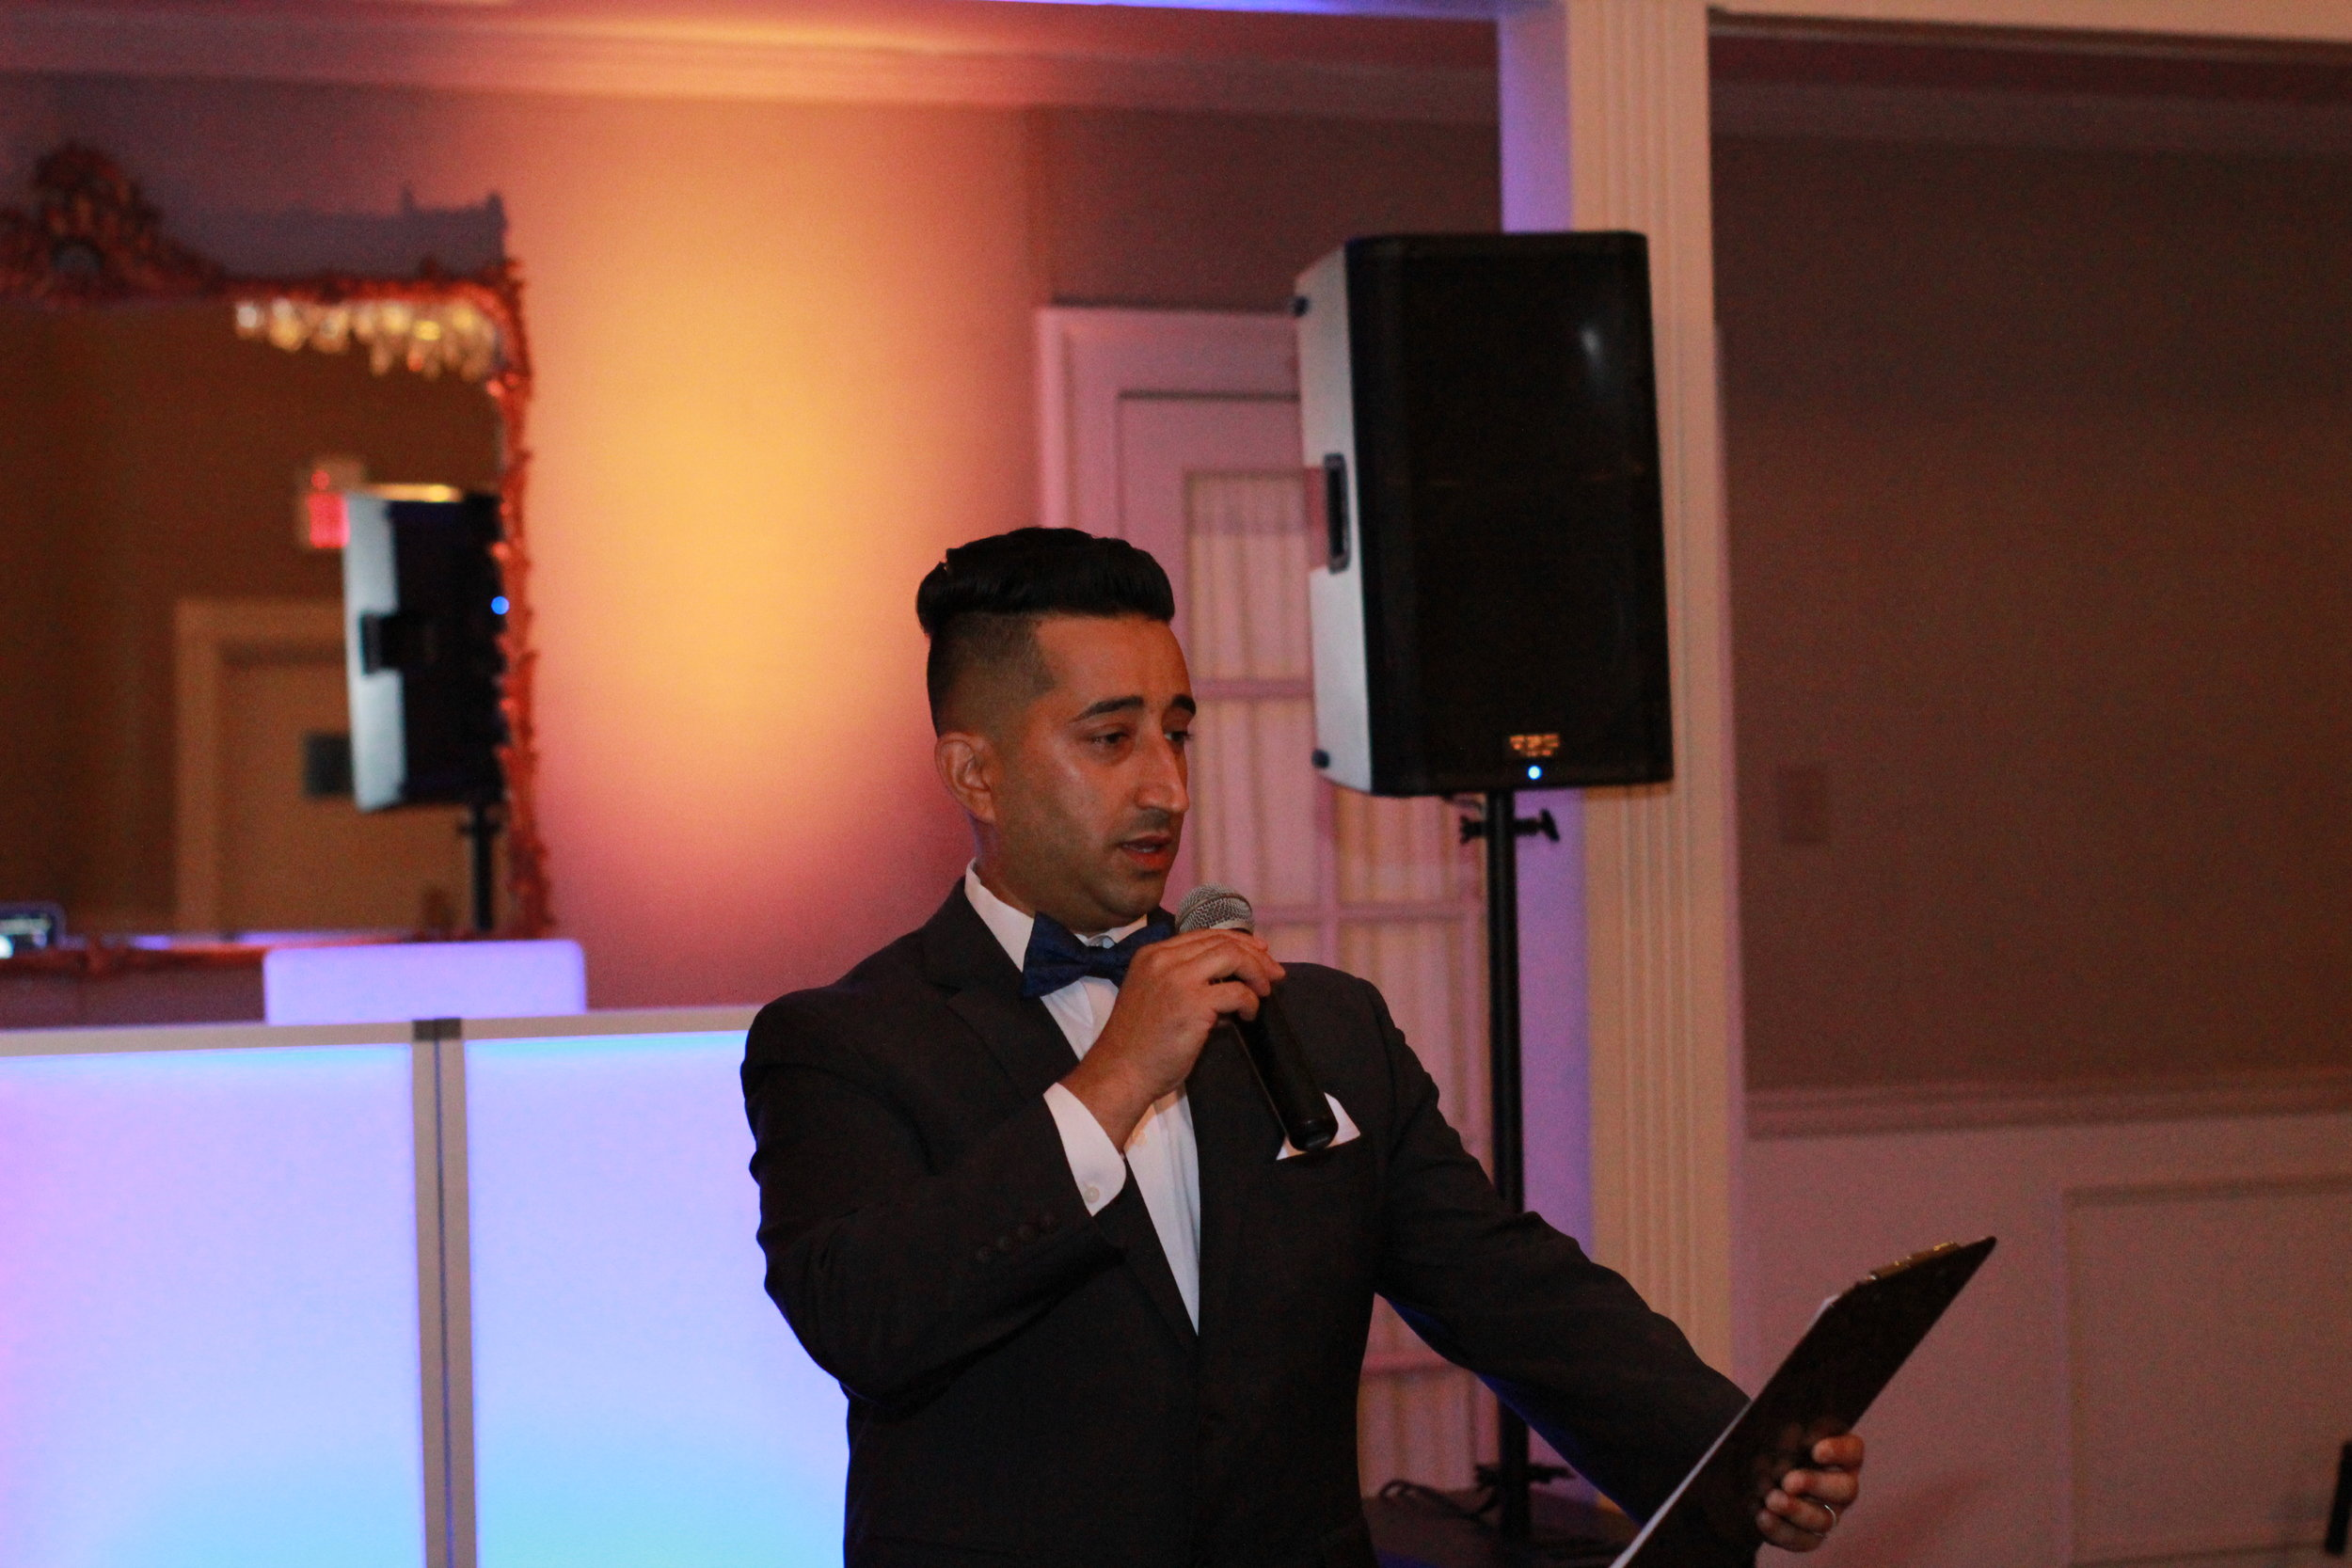 """Master of Ceremonies - A Master of Ceremonies or """"MC"""" is the formal host of an event, He is responsible for all announcements, formalities and activities as well as motivating and engaging with the crowd. An MC is essential for Weddings, Sweet 16s and Bar/Bat Mitzvahs where crowd control is key. The MC will ensure everything is running smoothly and on schedule so that you can be at ease and enjoy your special day."""